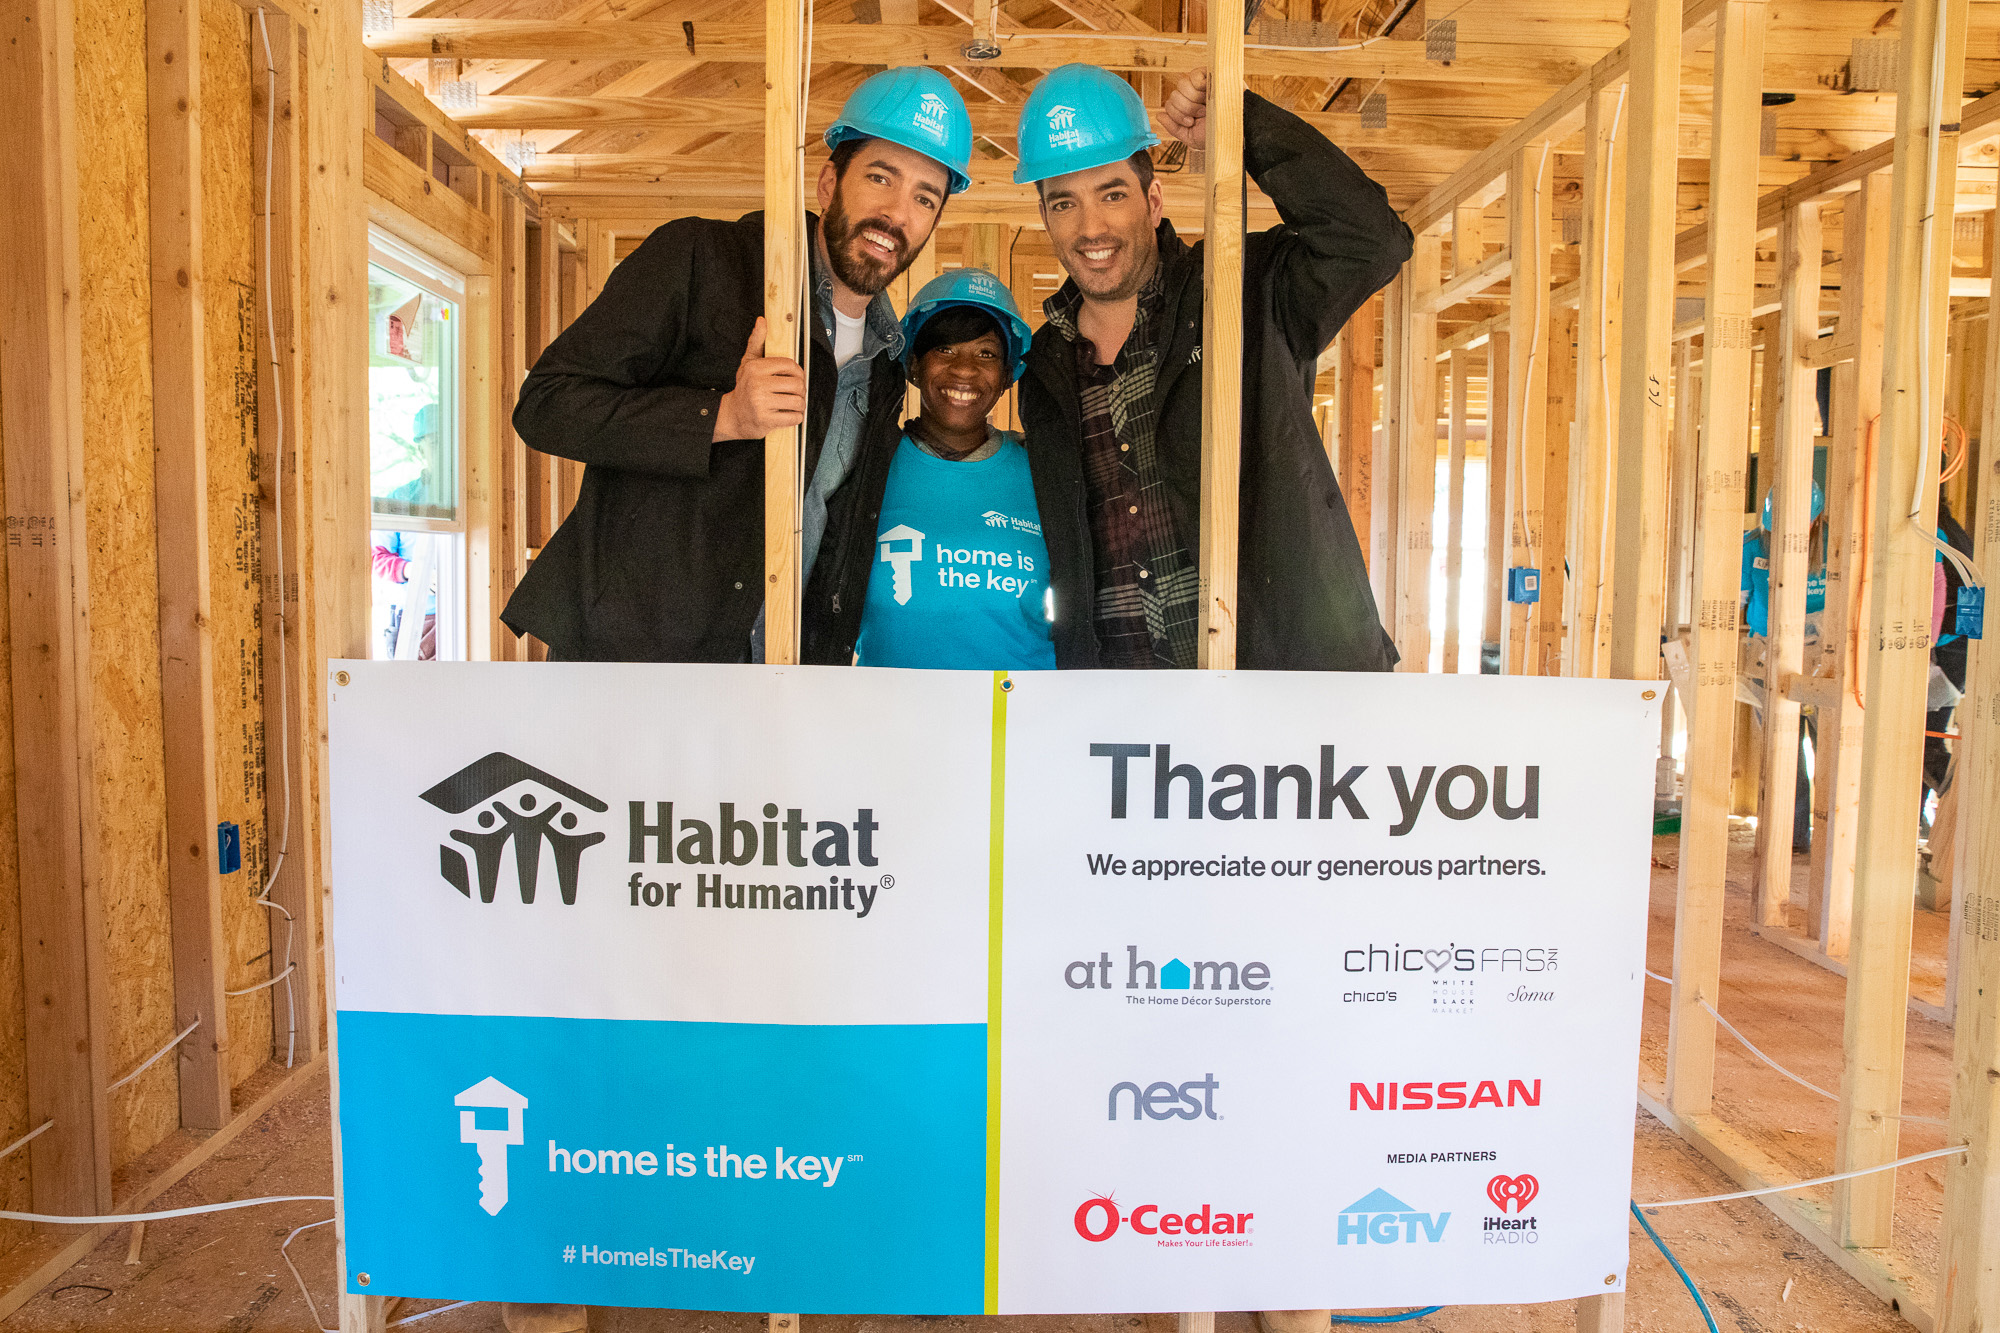 Habitat Humanitarians Drew and Jonathan Scott join future homeowner Krushetta to help build her house during Habitat for Humanity's Home is the Key campaign launch in Atlanta.